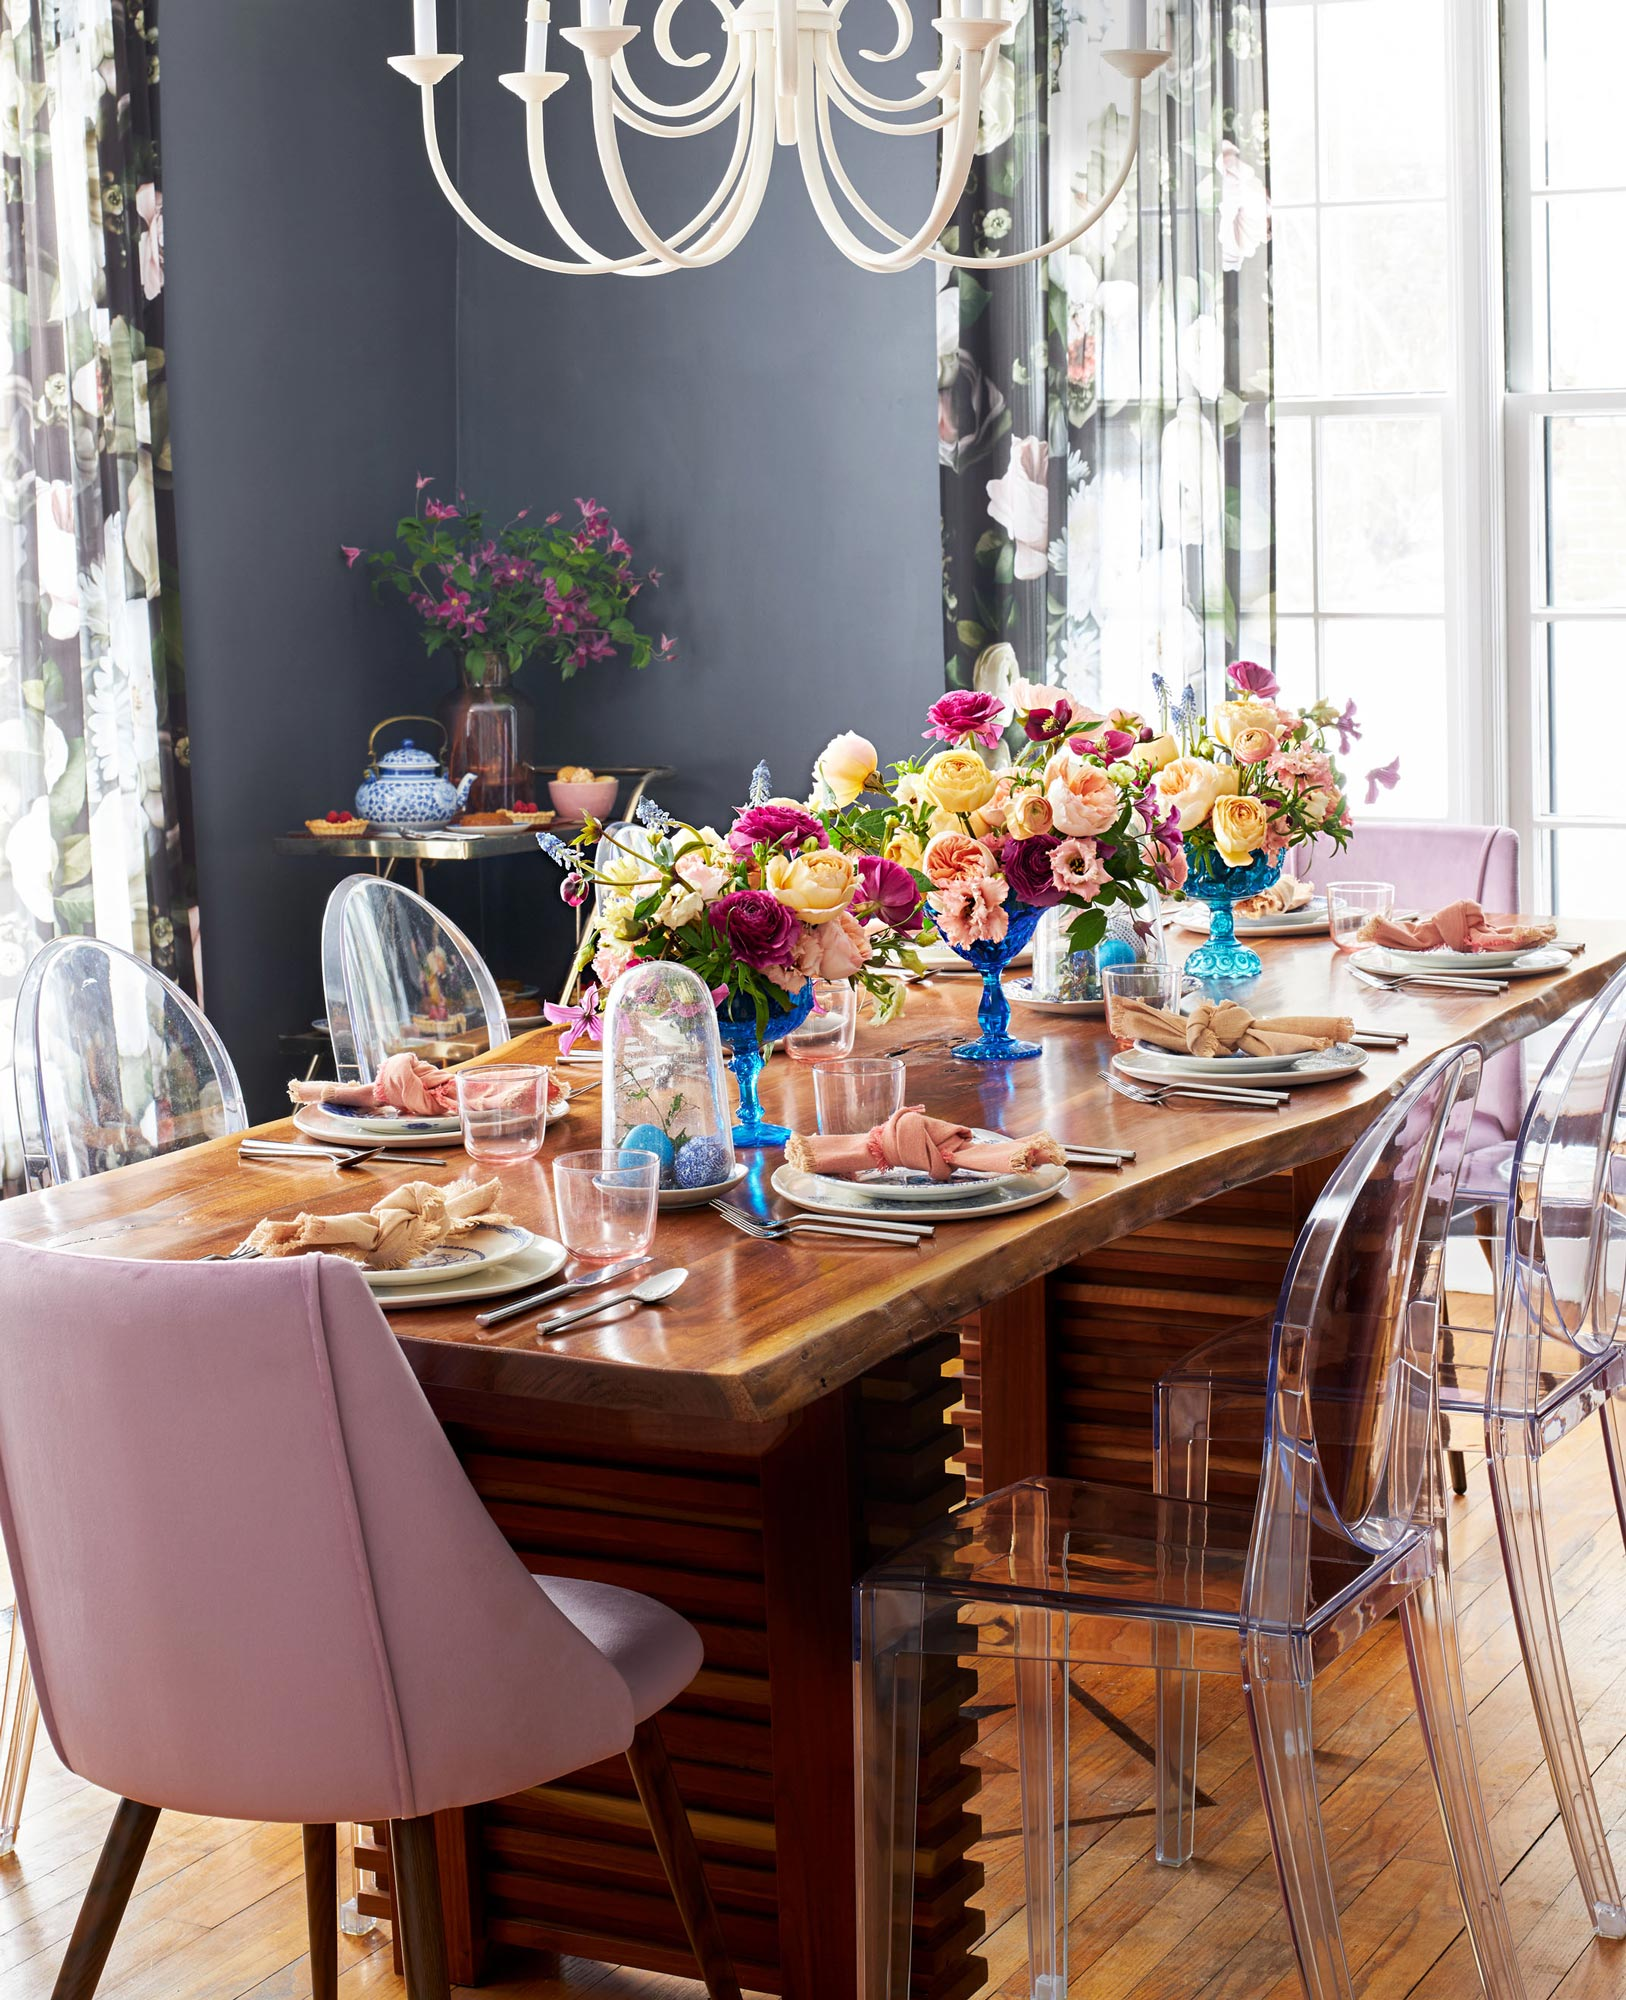 A room in bloom for Easter